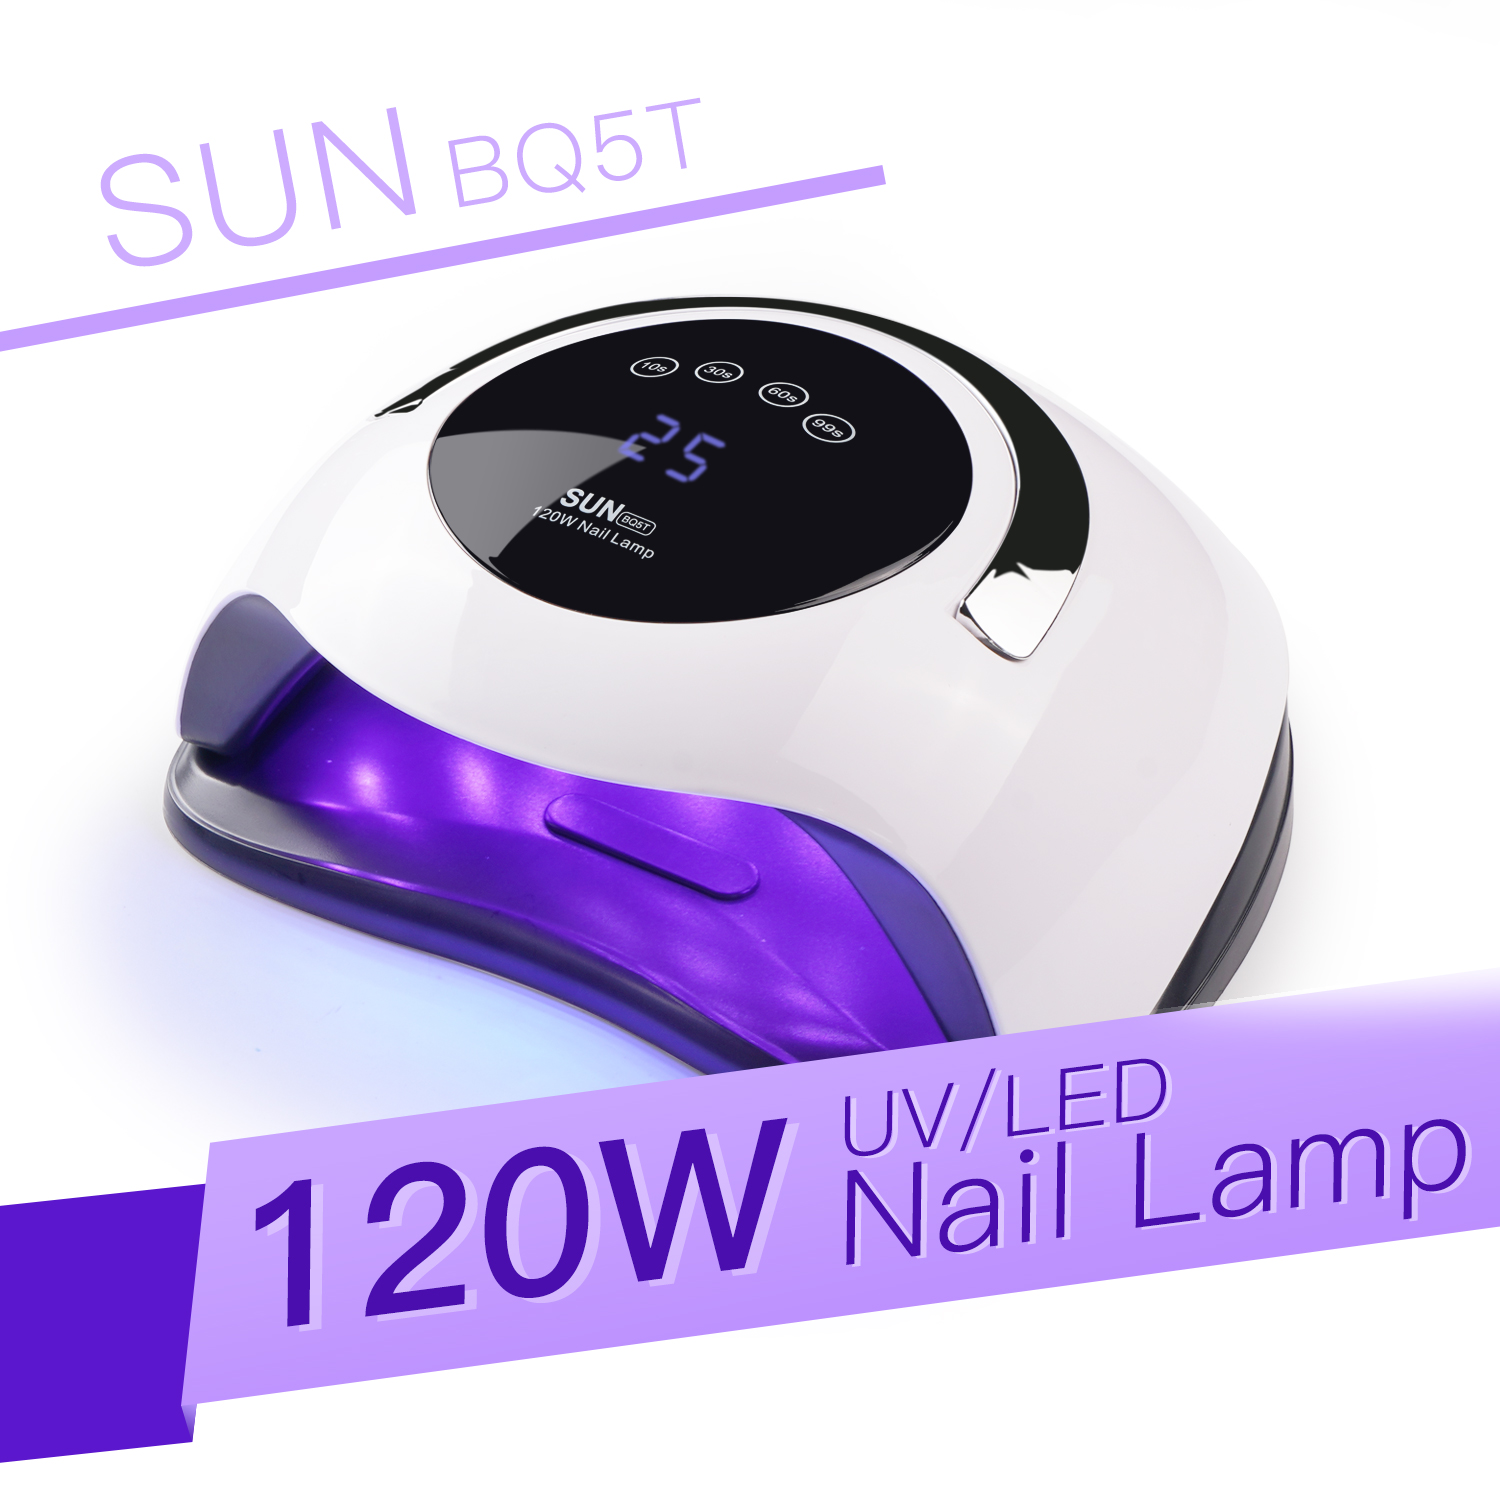 SUN BQ5T <font><b>UV</b></font> <font><b>LED</b></font> <font><b>Lamp</b></font> For Nails Dryer 120W Ice <font><b>Lamp</b></font> For Manicure Gel Nail <font><b>Lamp</b></font> Drying <font><b>Lamp</b></font> For Gel Varnish image